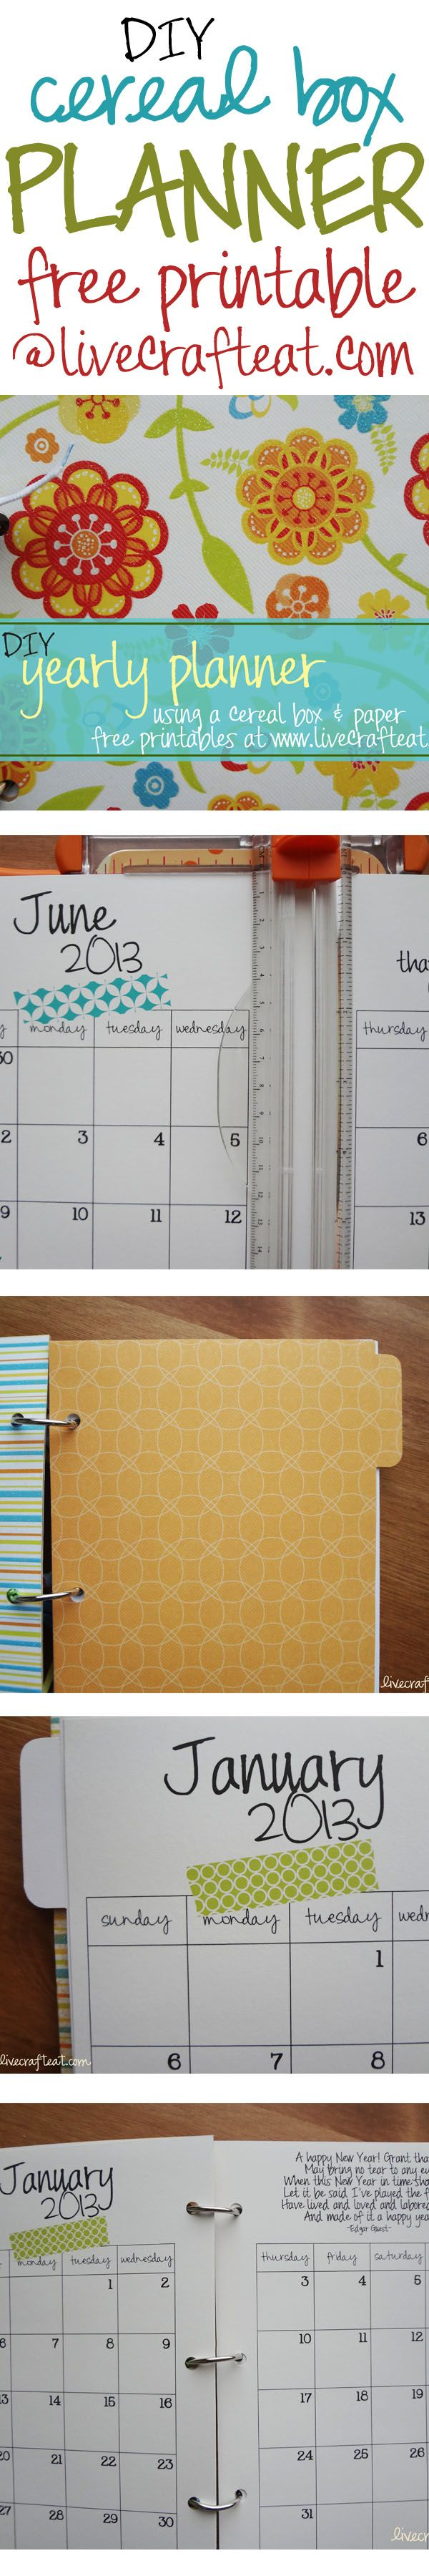 how to make your own planner using a cereal box and scrapbook paper! how to and free printable monthly pages @ www.livecrafteat.com